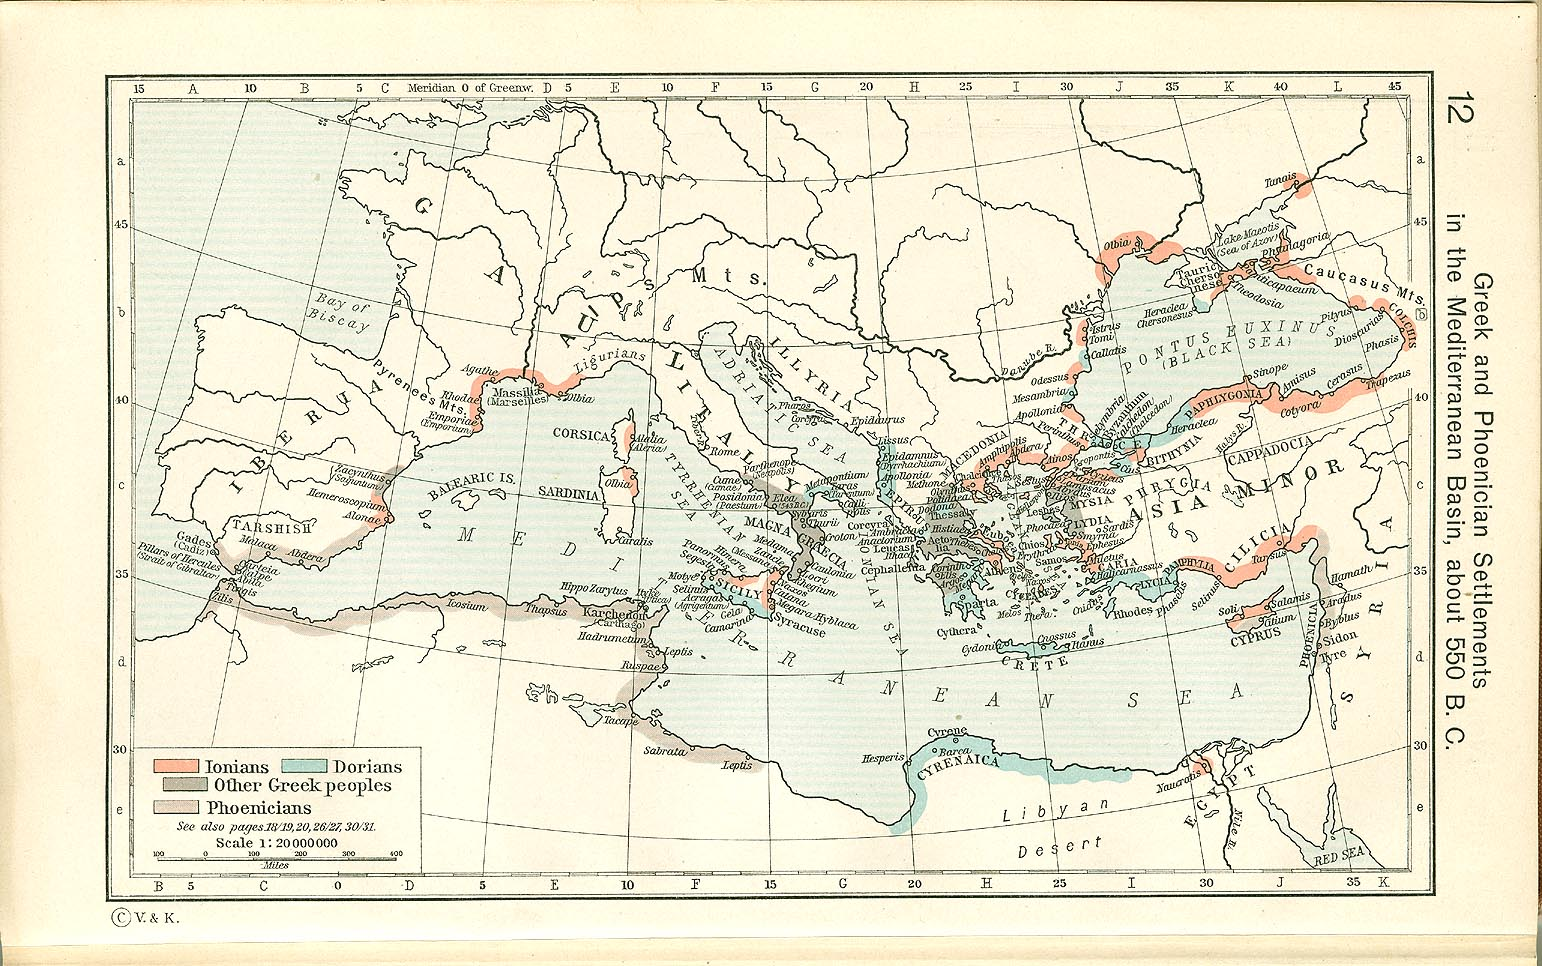 Greek and Phoenician in the Mediterranean Basin about 550 B.C.